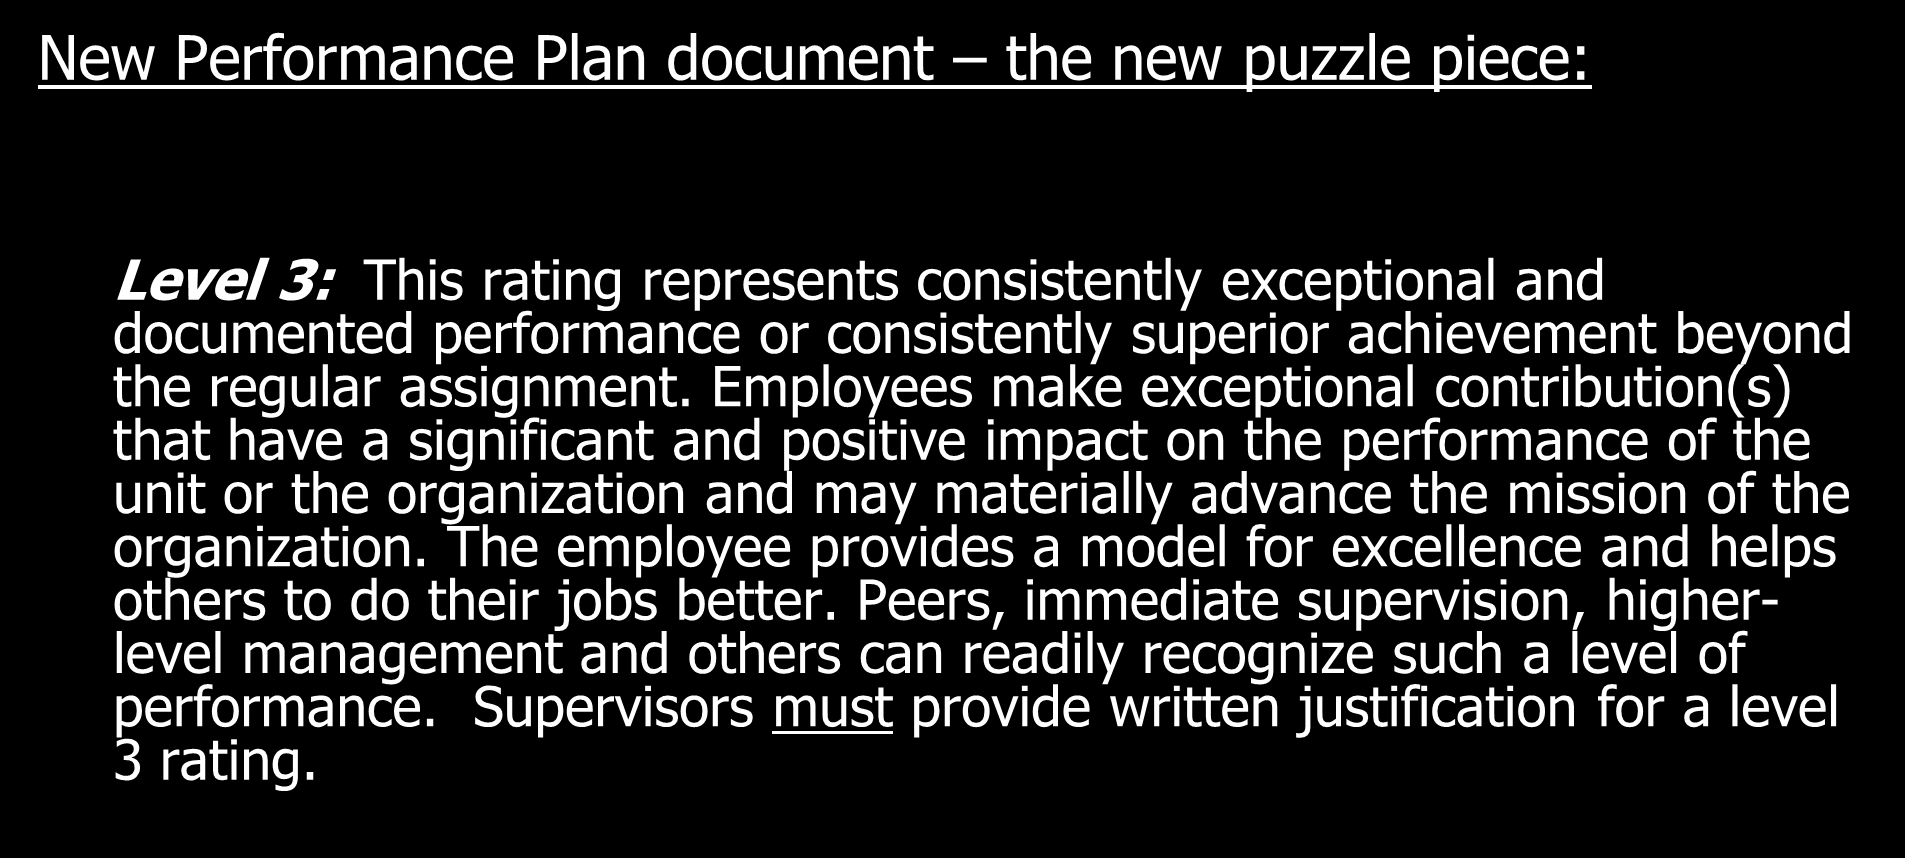 New Performance Plan document the new puzzle piece: Level 3: This rating represents consistently exceptional and documented performance or consistently superior achievement beyond the regular